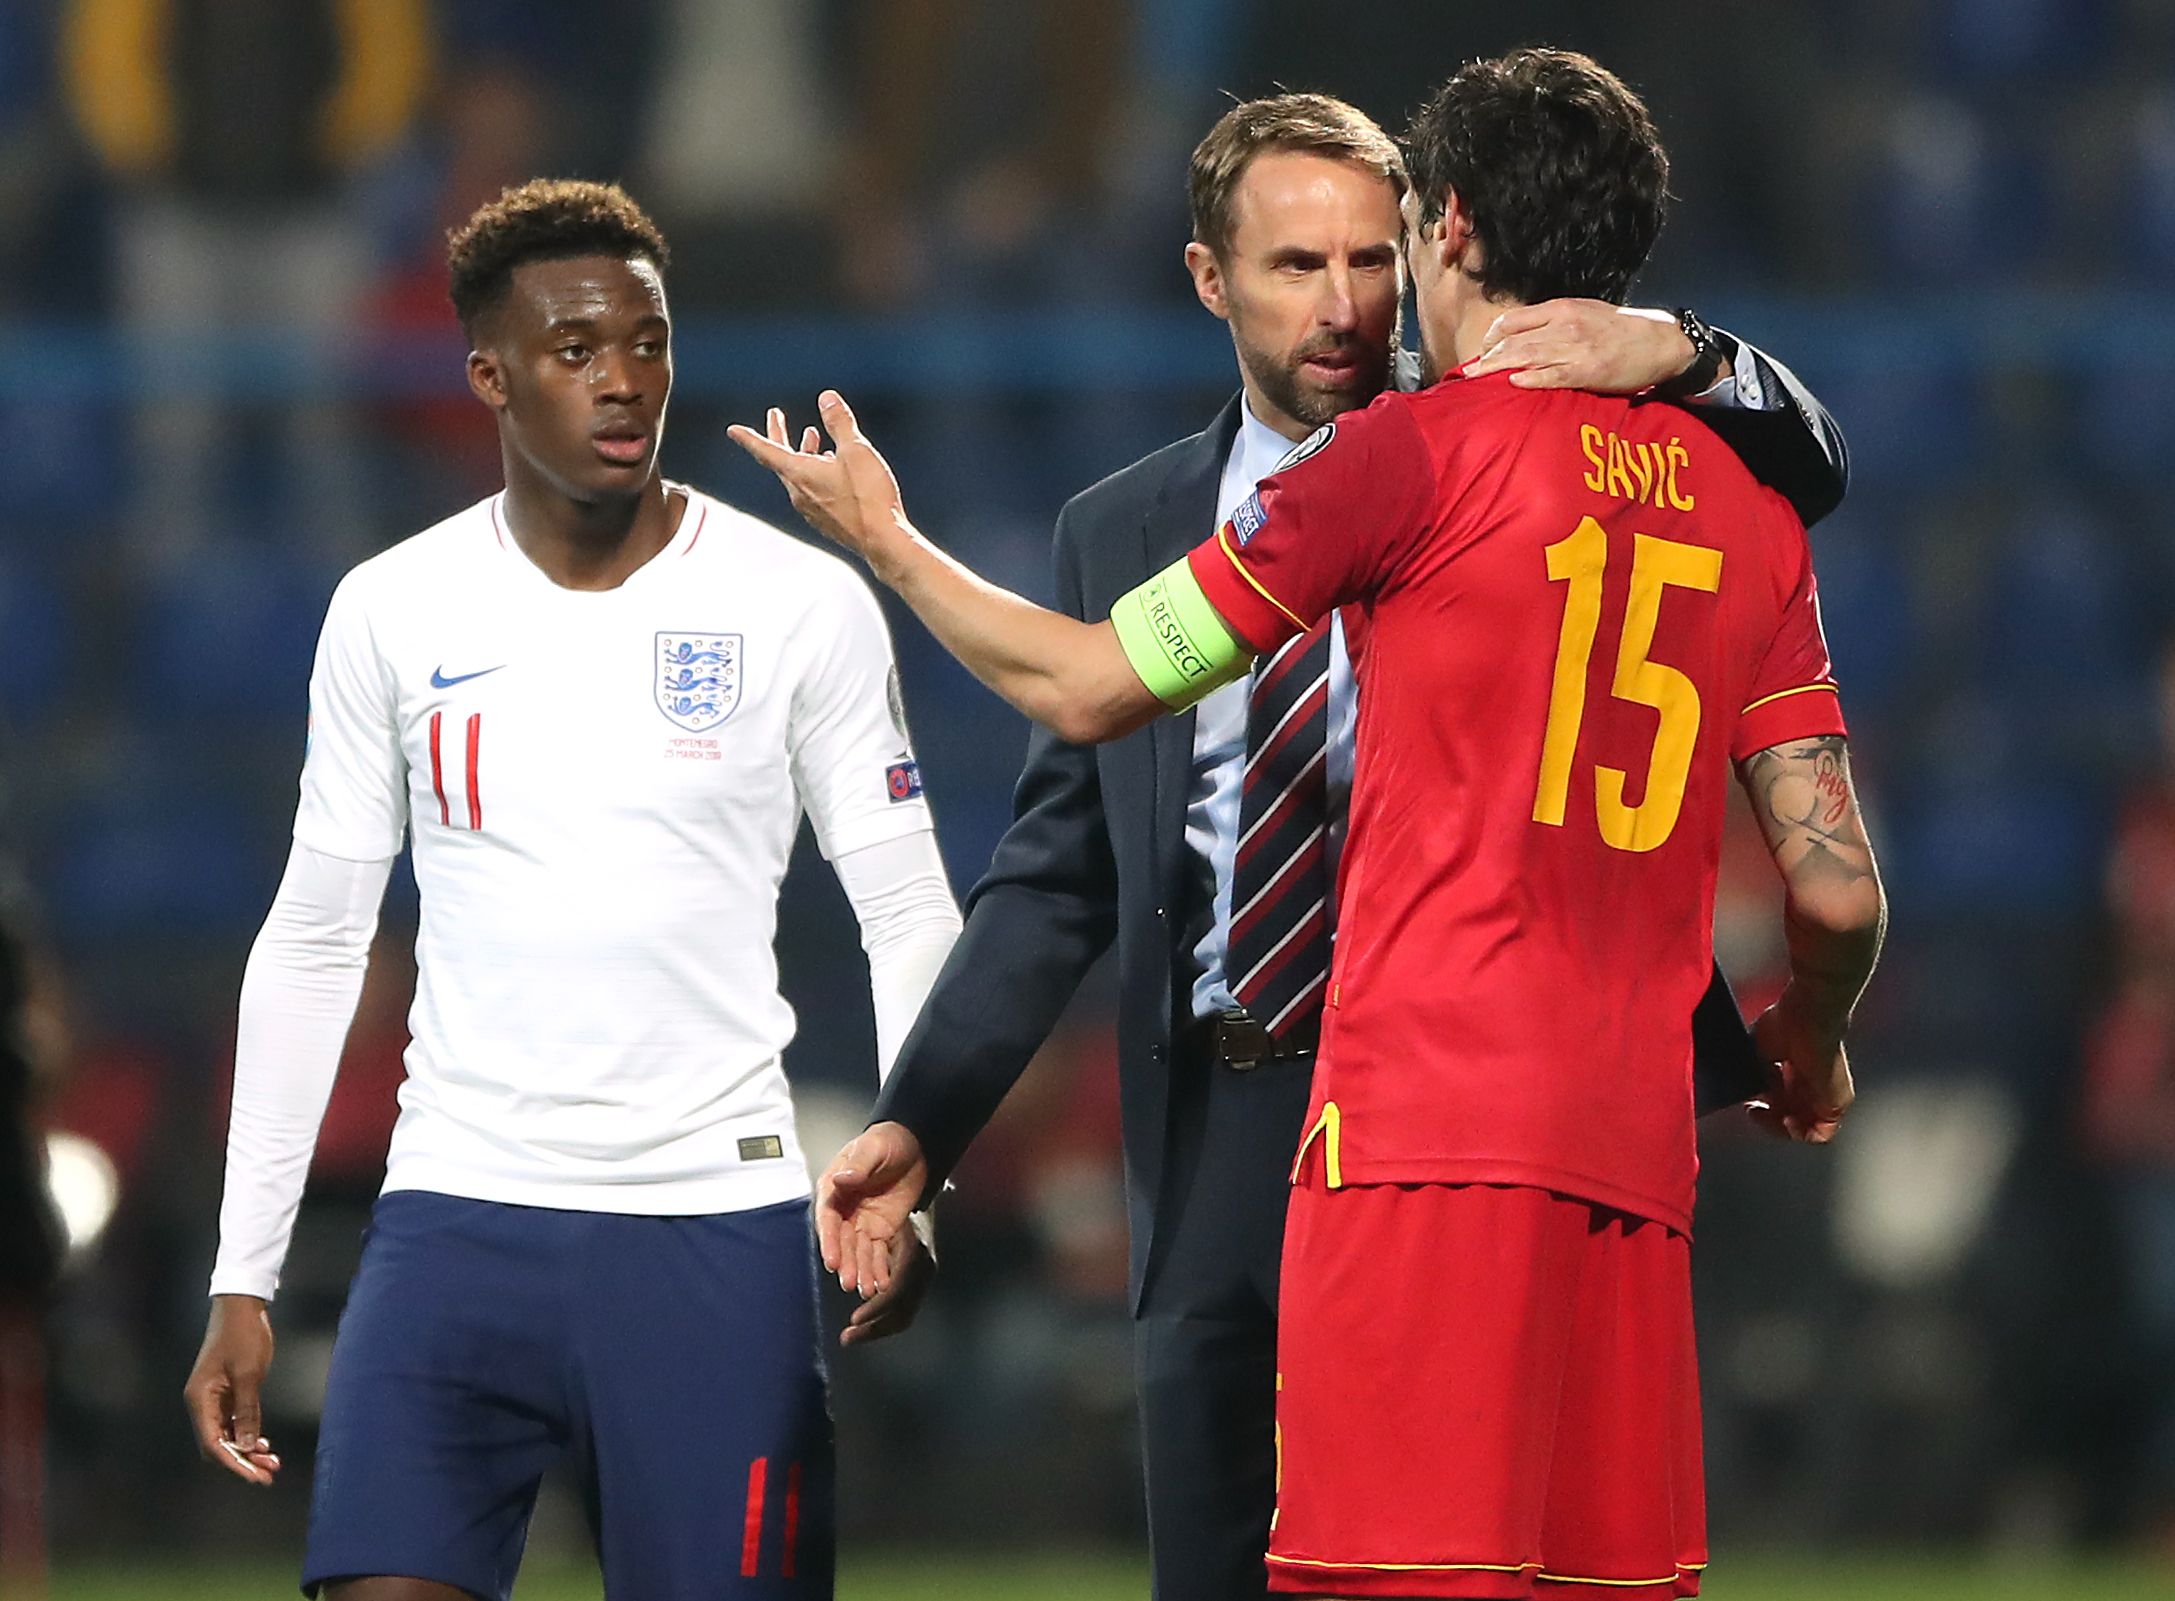 Callum Hudson-Odoi, left, was subjected to racist abuse in Montenegro